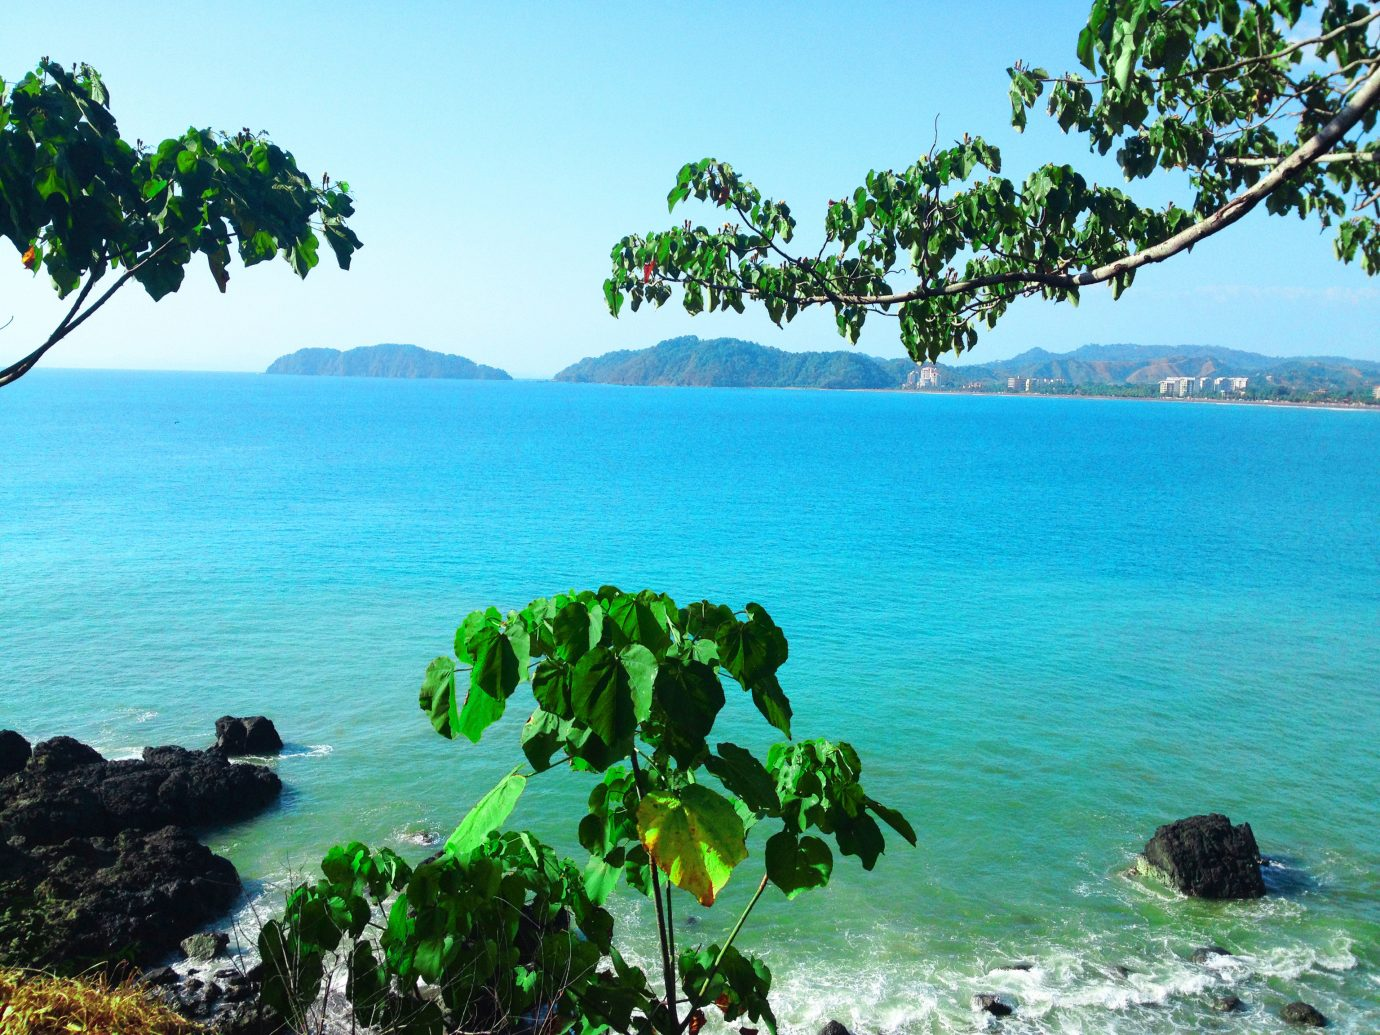 Offbeat water outdoor sky tree Sea landform geographical feature Coast Ocean Beach body of water shore Lake rock tropics caribbean Nature islet River bay archipelago Island vacation overlooking arecales Lagoon cove cape plant beautiful pond